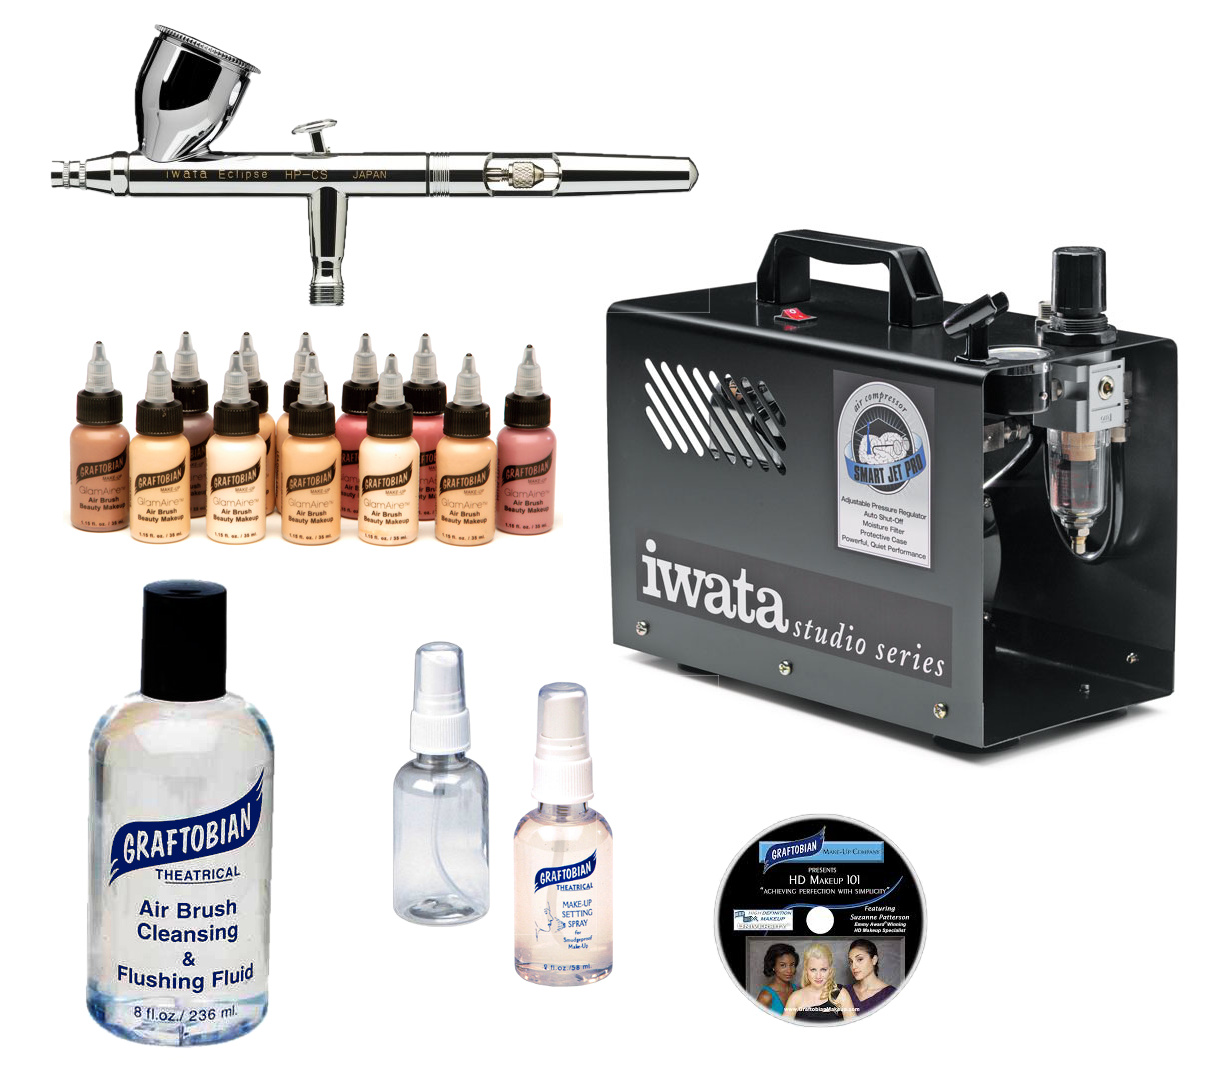 Smart Jet Pro Complete Airbrush System